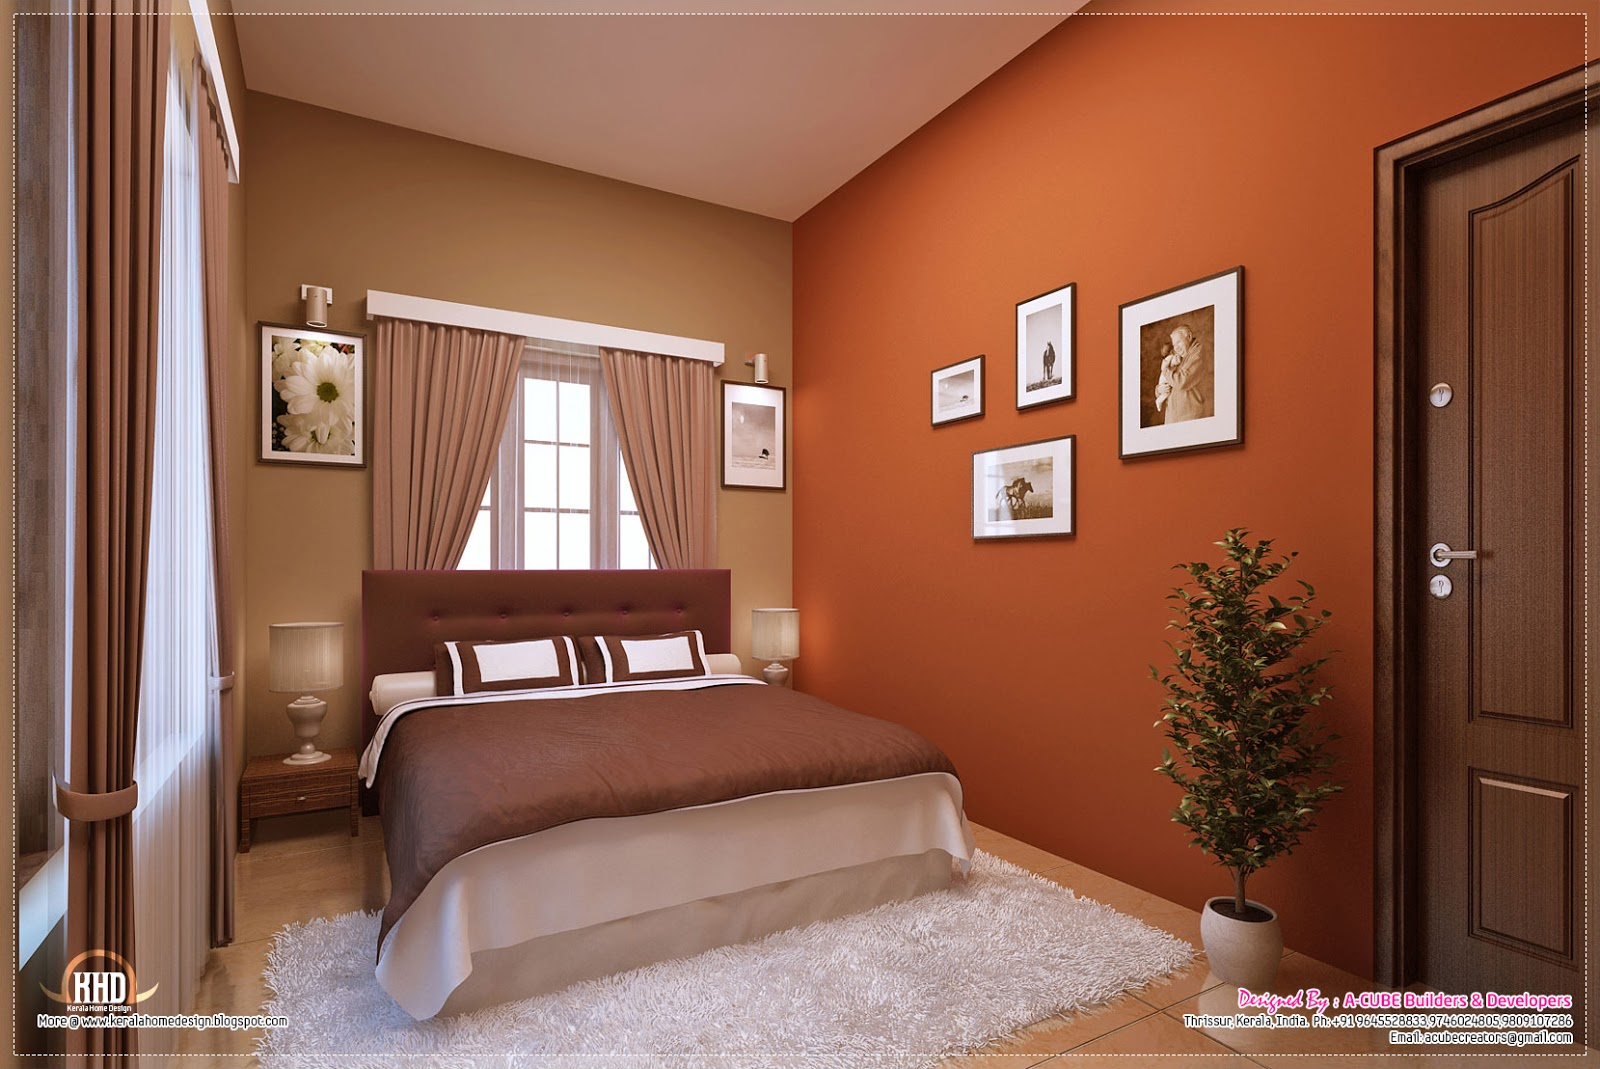 Awesome interior decoration ideas kerala home design and for One bedroom house interior design